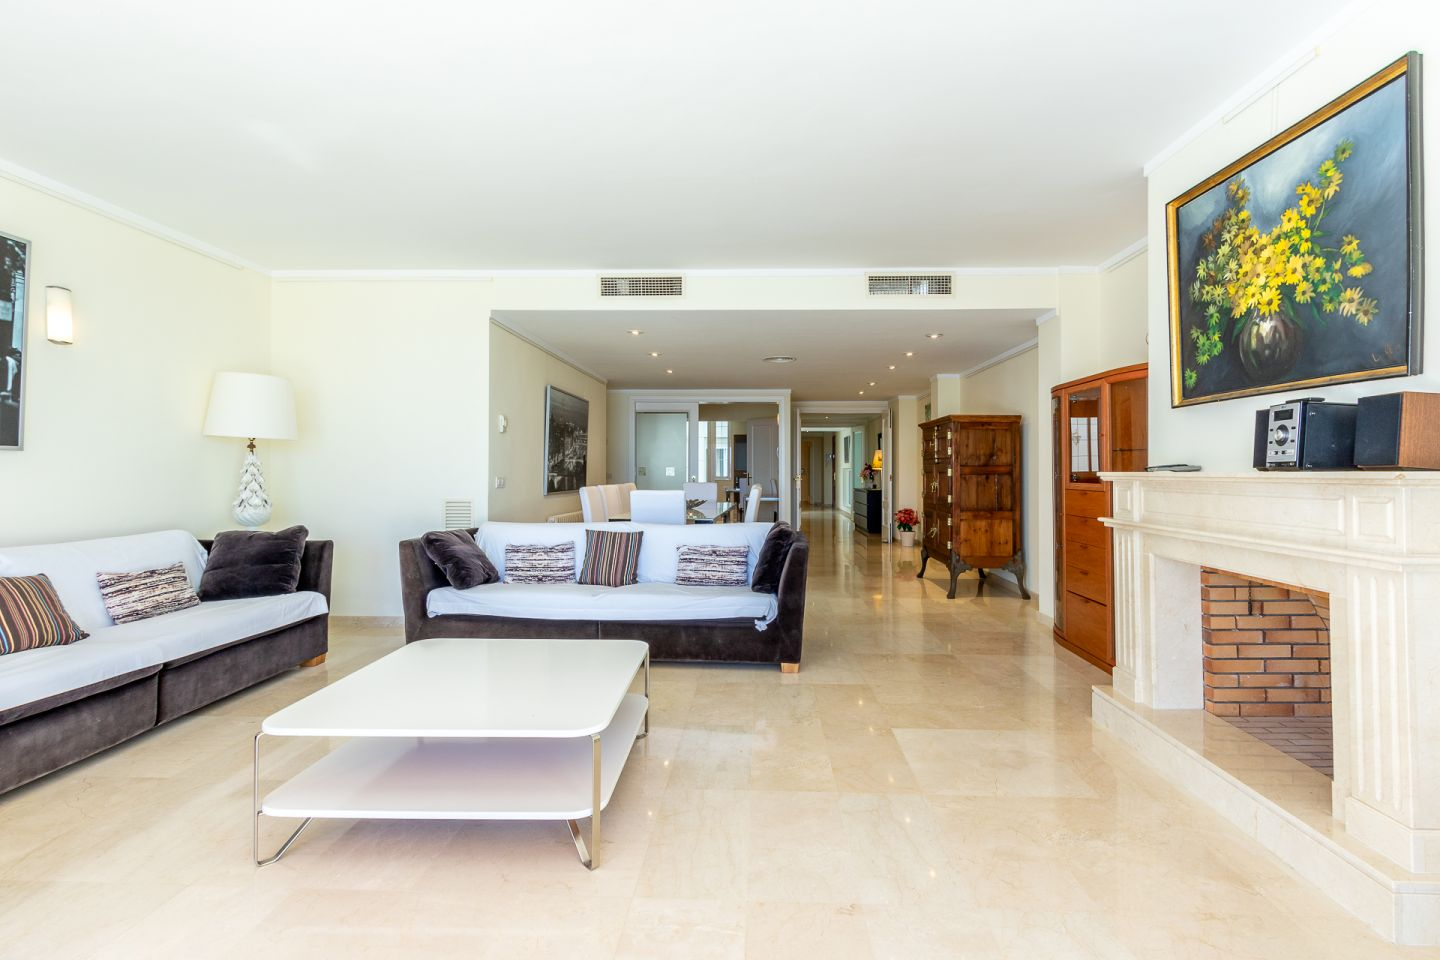 5 Bed Apartment for sale in Puerto Pollensa 5